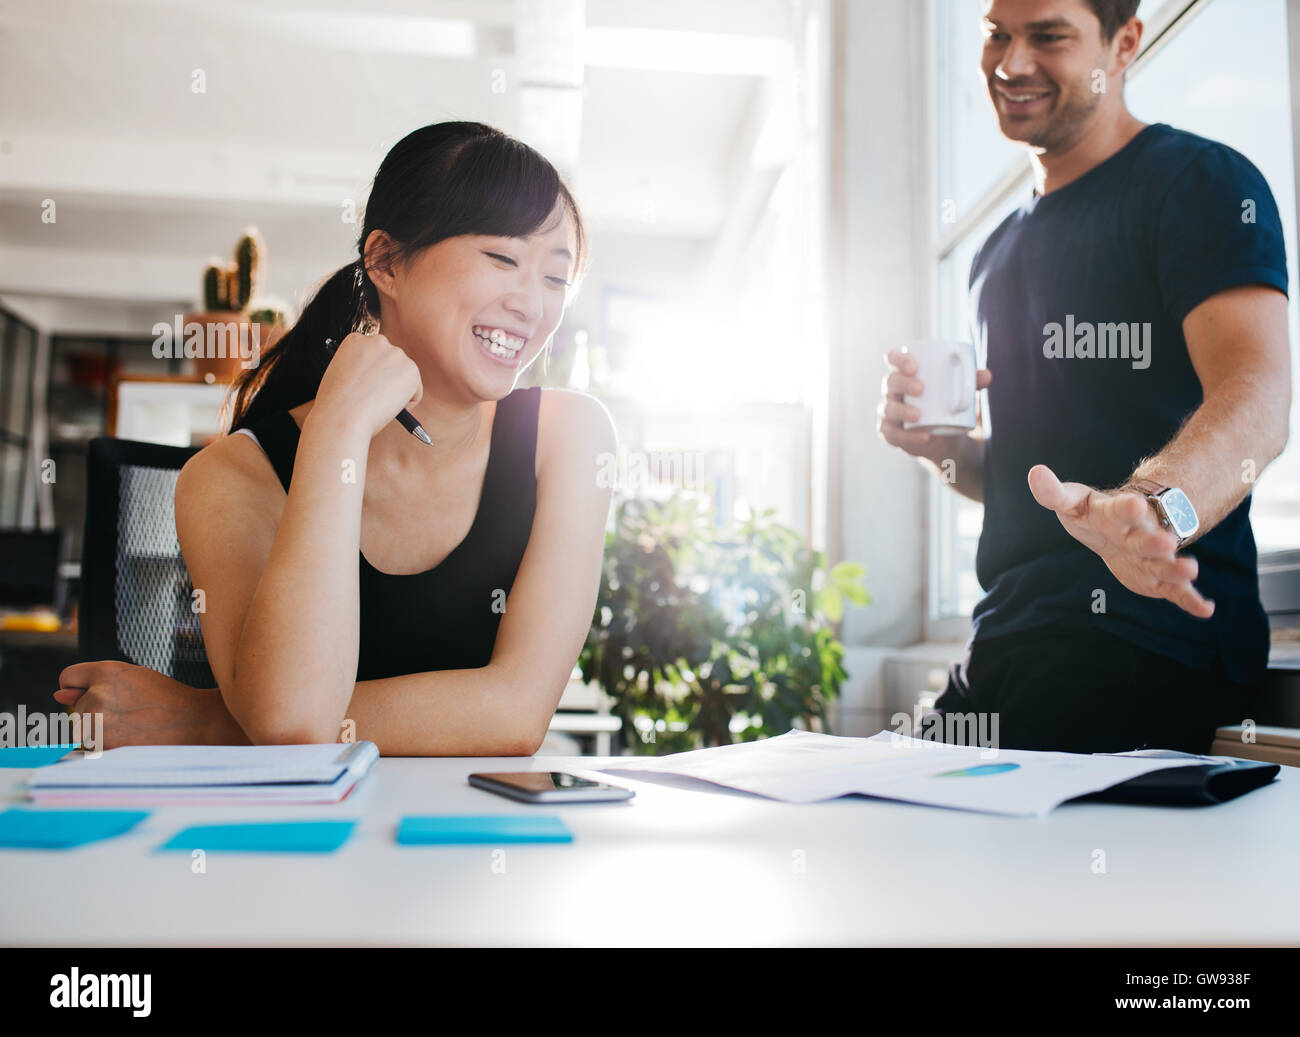 Shot of two young business partners discussing new ideas and smiling. Young people working together in office. Stock Photo